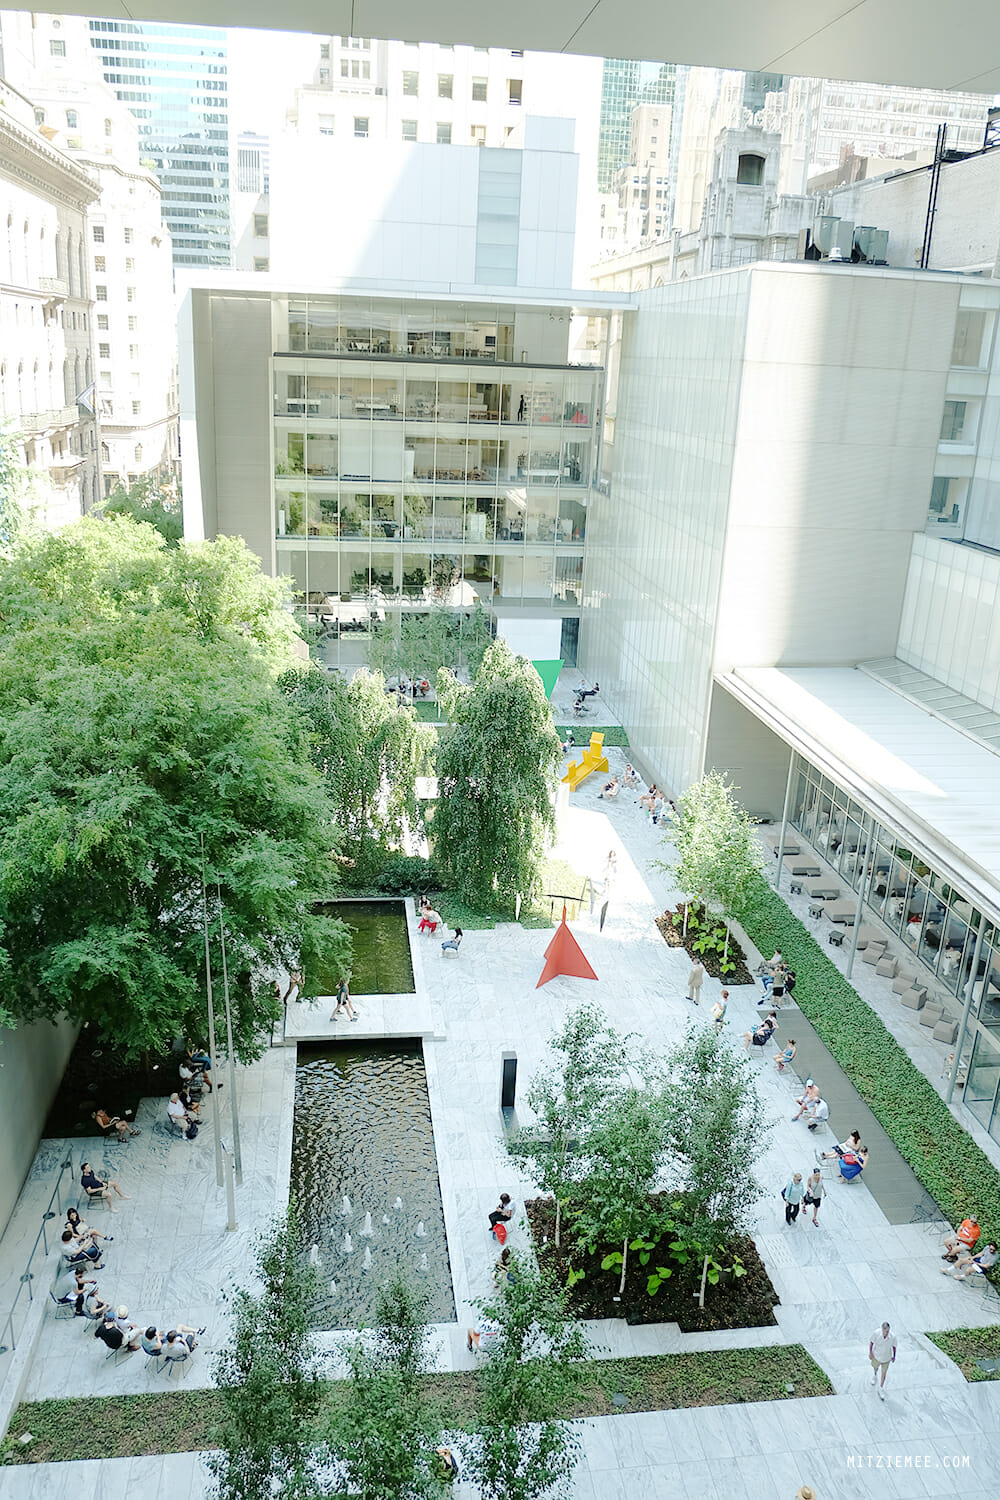 The Sculpture Garden at MoMA, New York